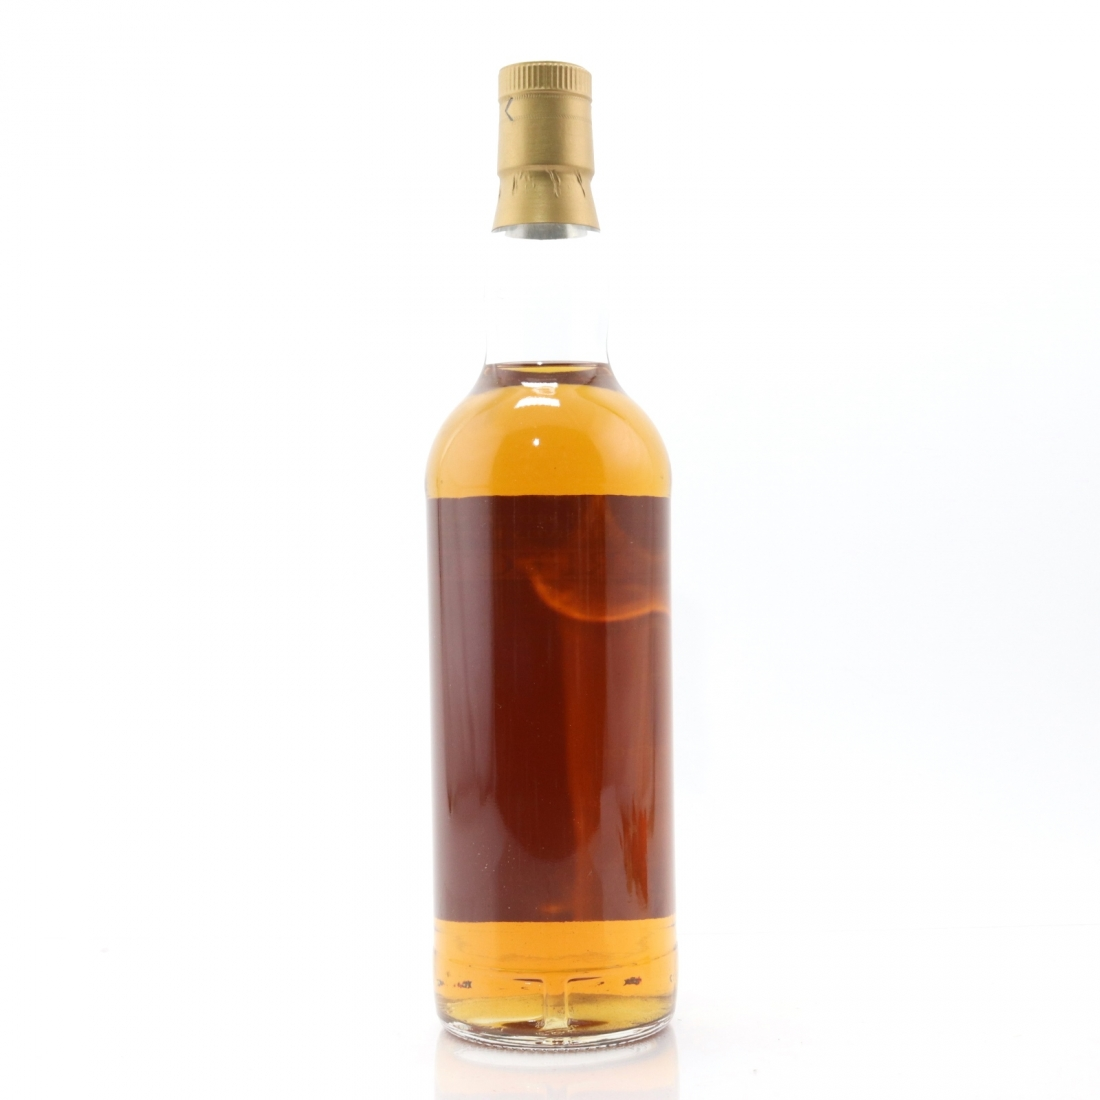 Tomintoul 1969 Whisky Agency 42 Year Old / Perfect Dram